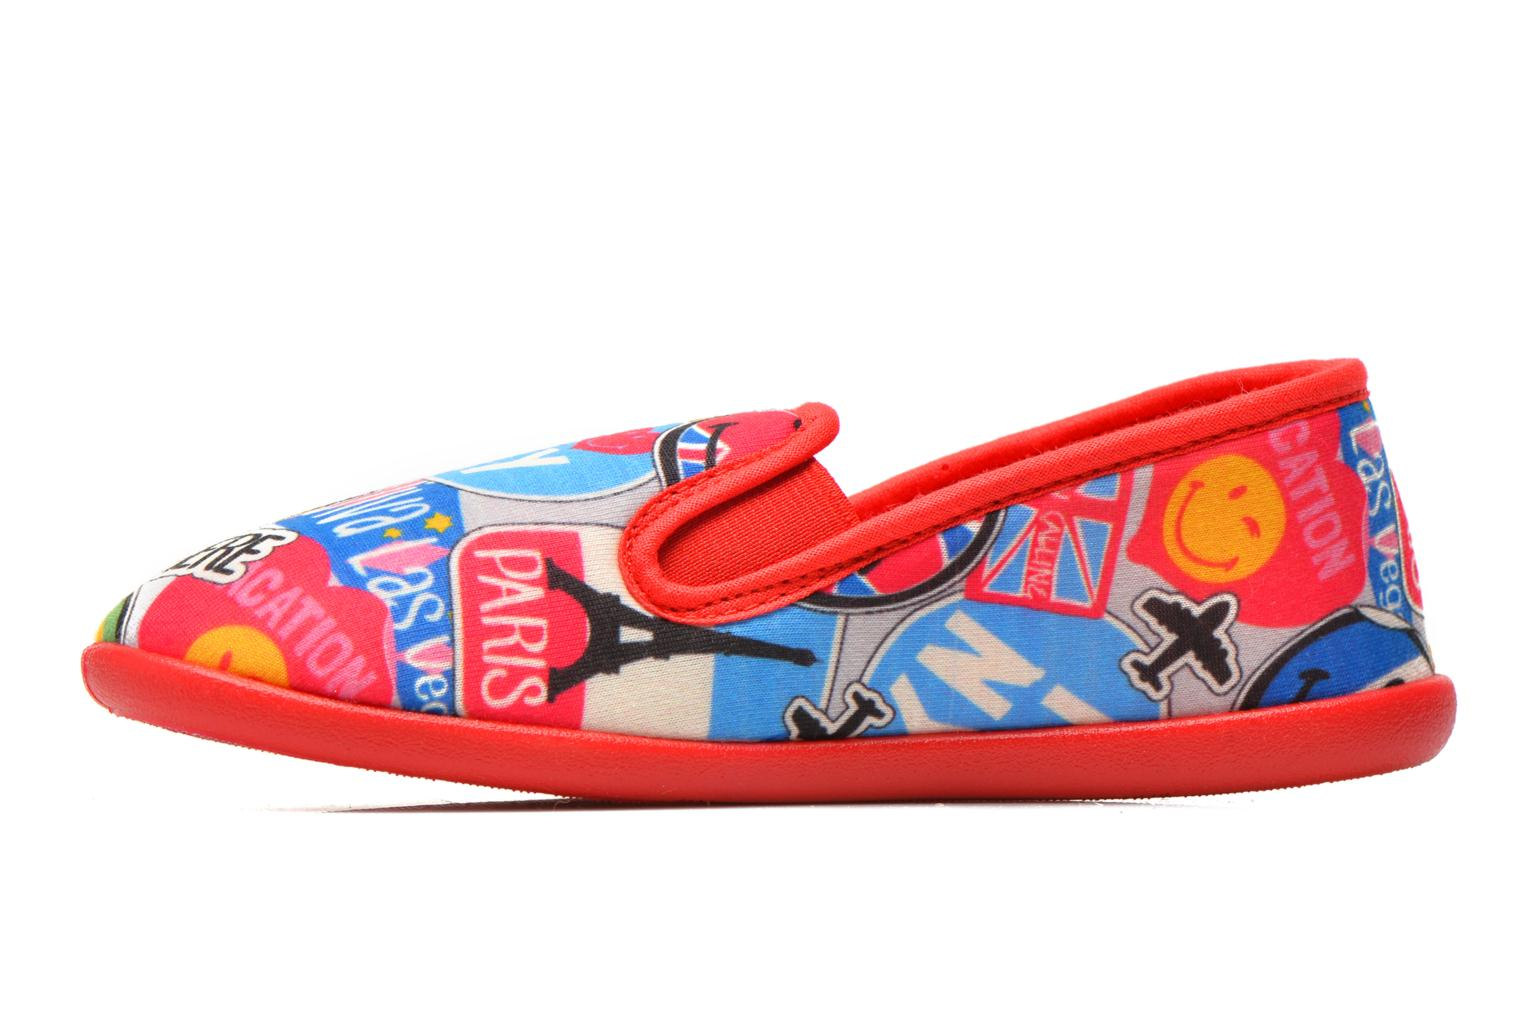 Pantofole Be Only Sans Gene Smiley Travel Multicolore immagine frontale